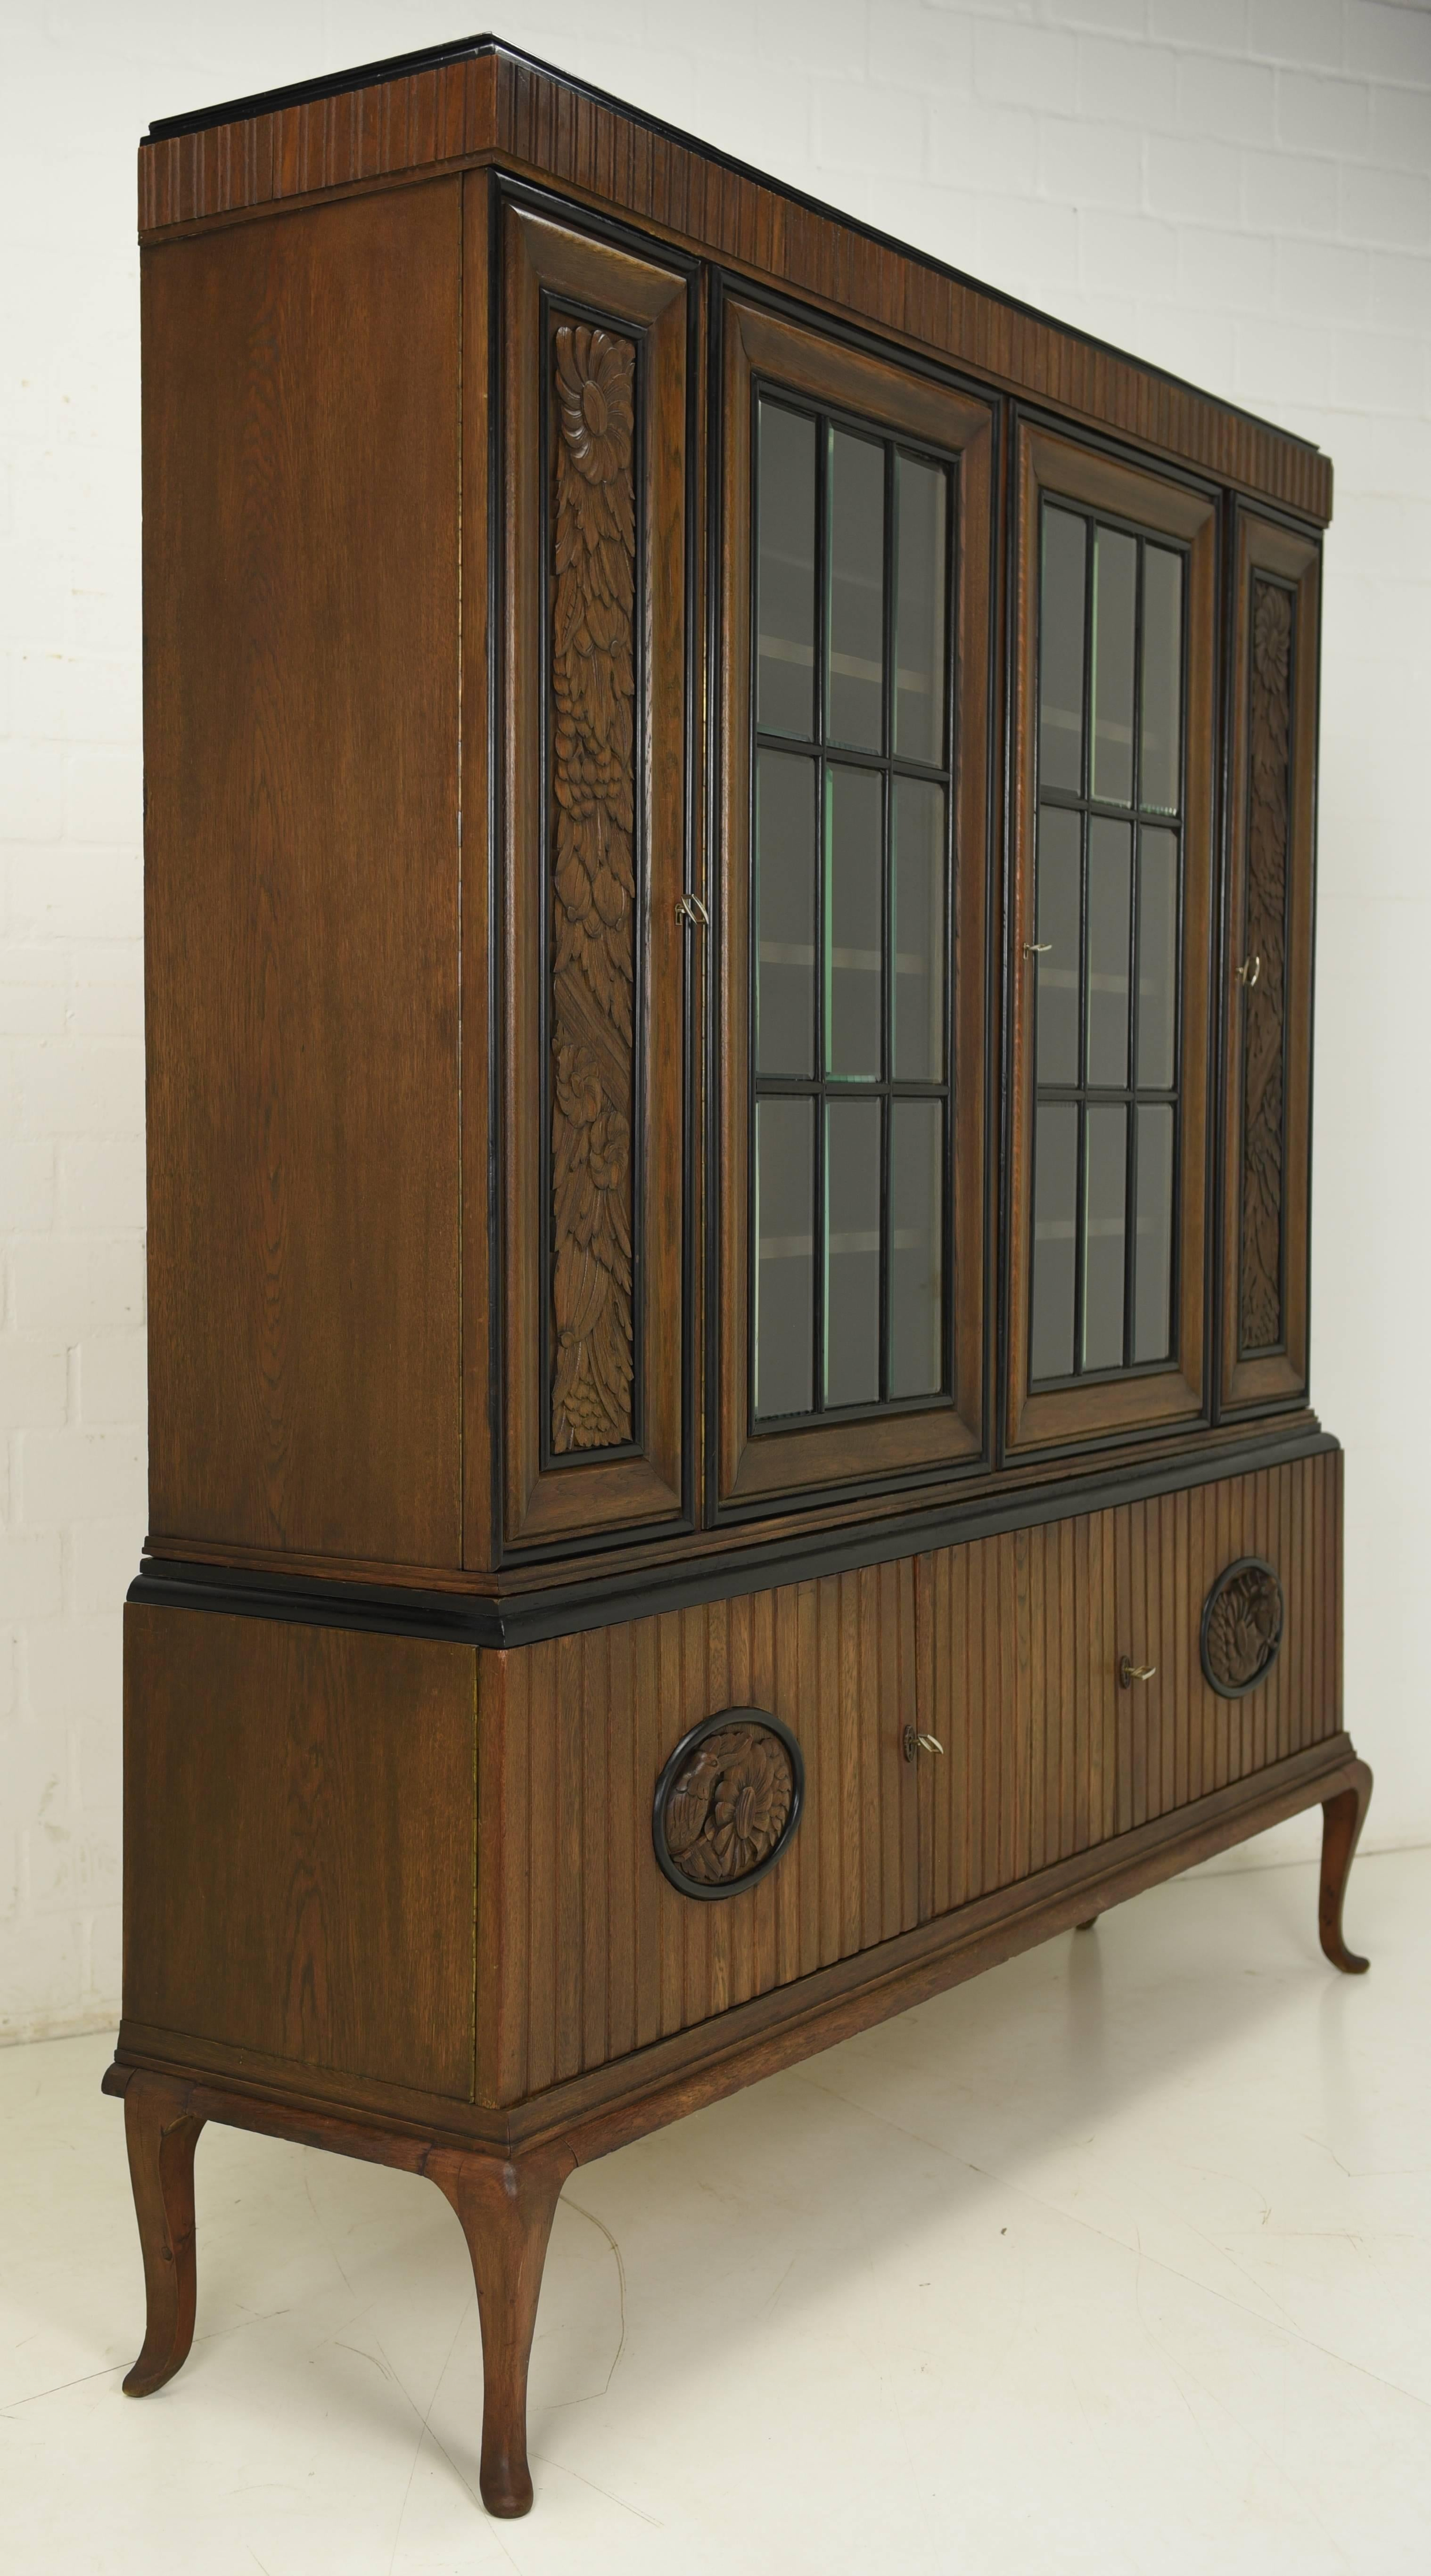 Veneer Art Deco Showcase Cabinet From 1925 For Sale